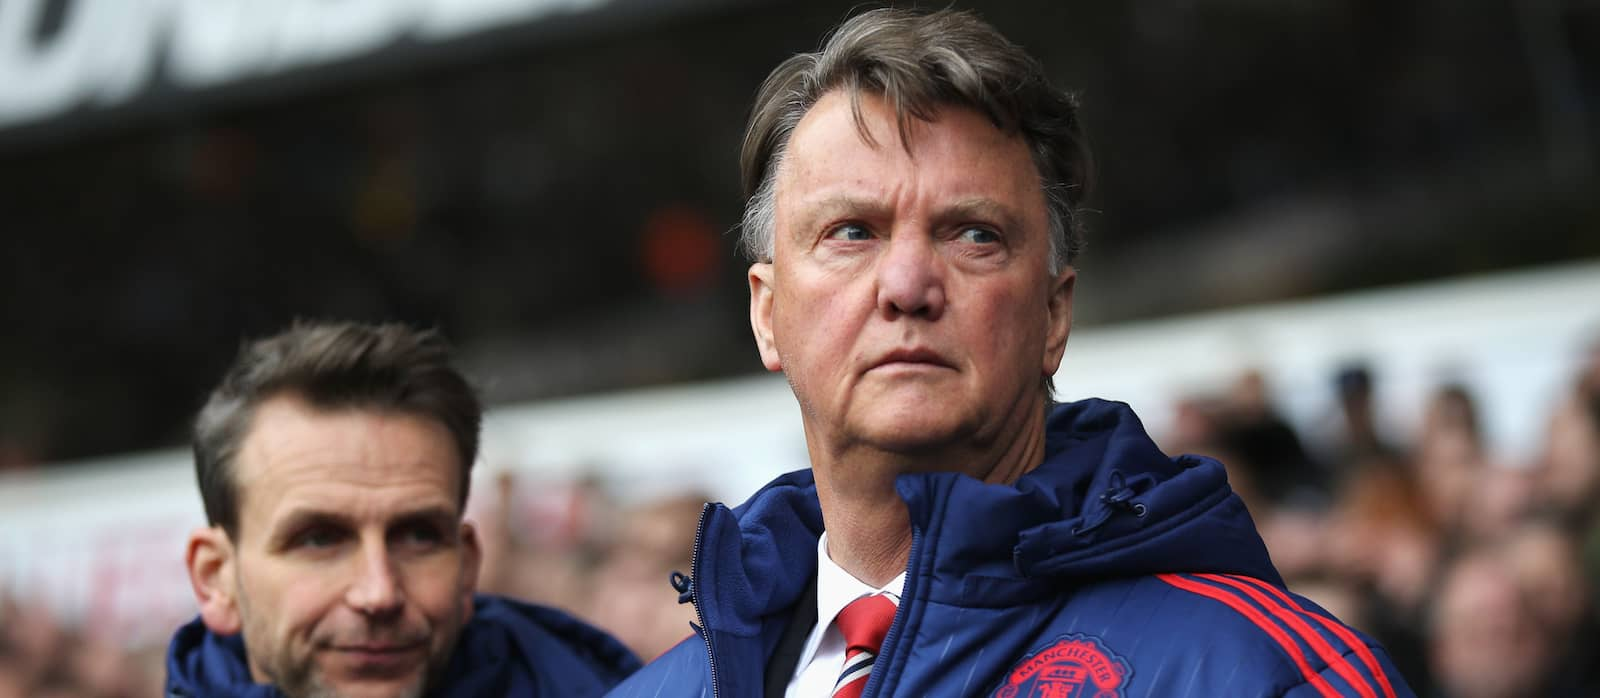 Louis van Gaal explains Ashley Young substitution against Tottenham Hotspur